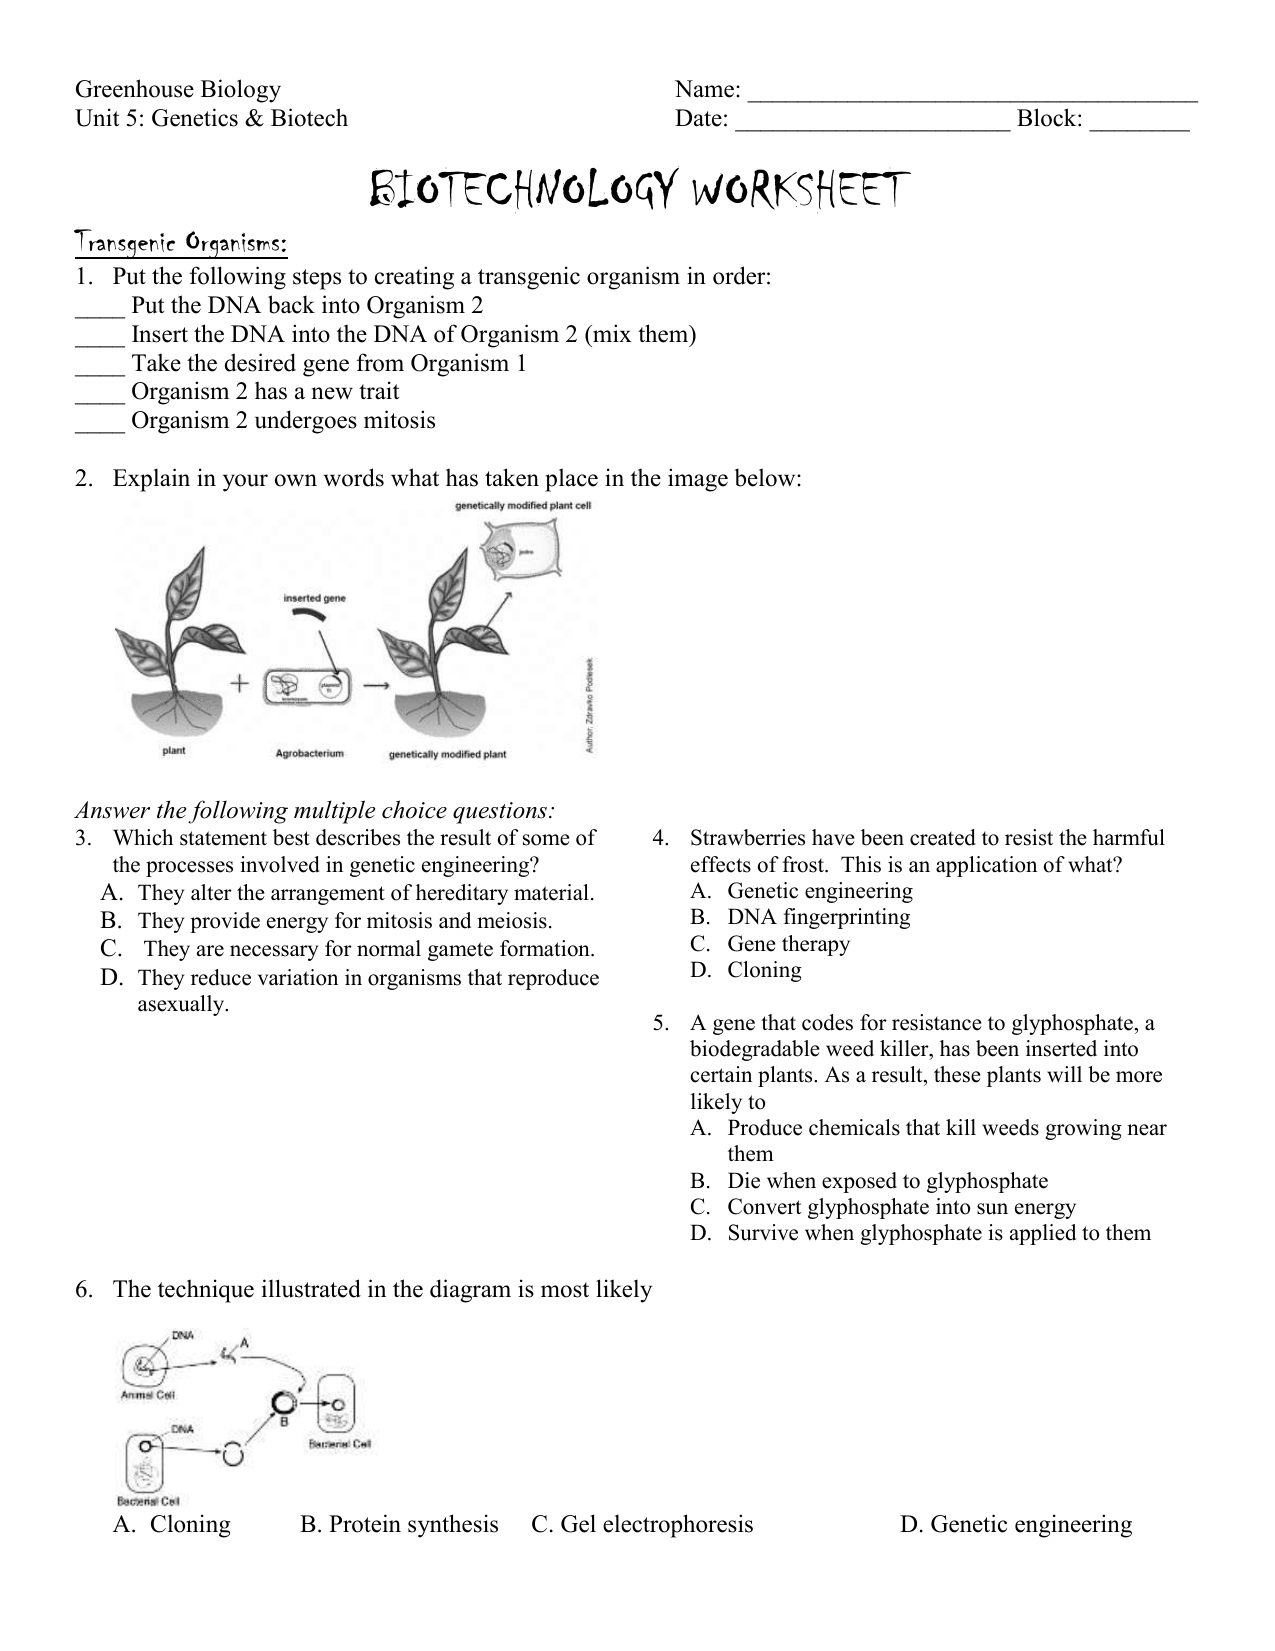 Gel Electrophoresis Worksheet Answer Key - Worksheet List